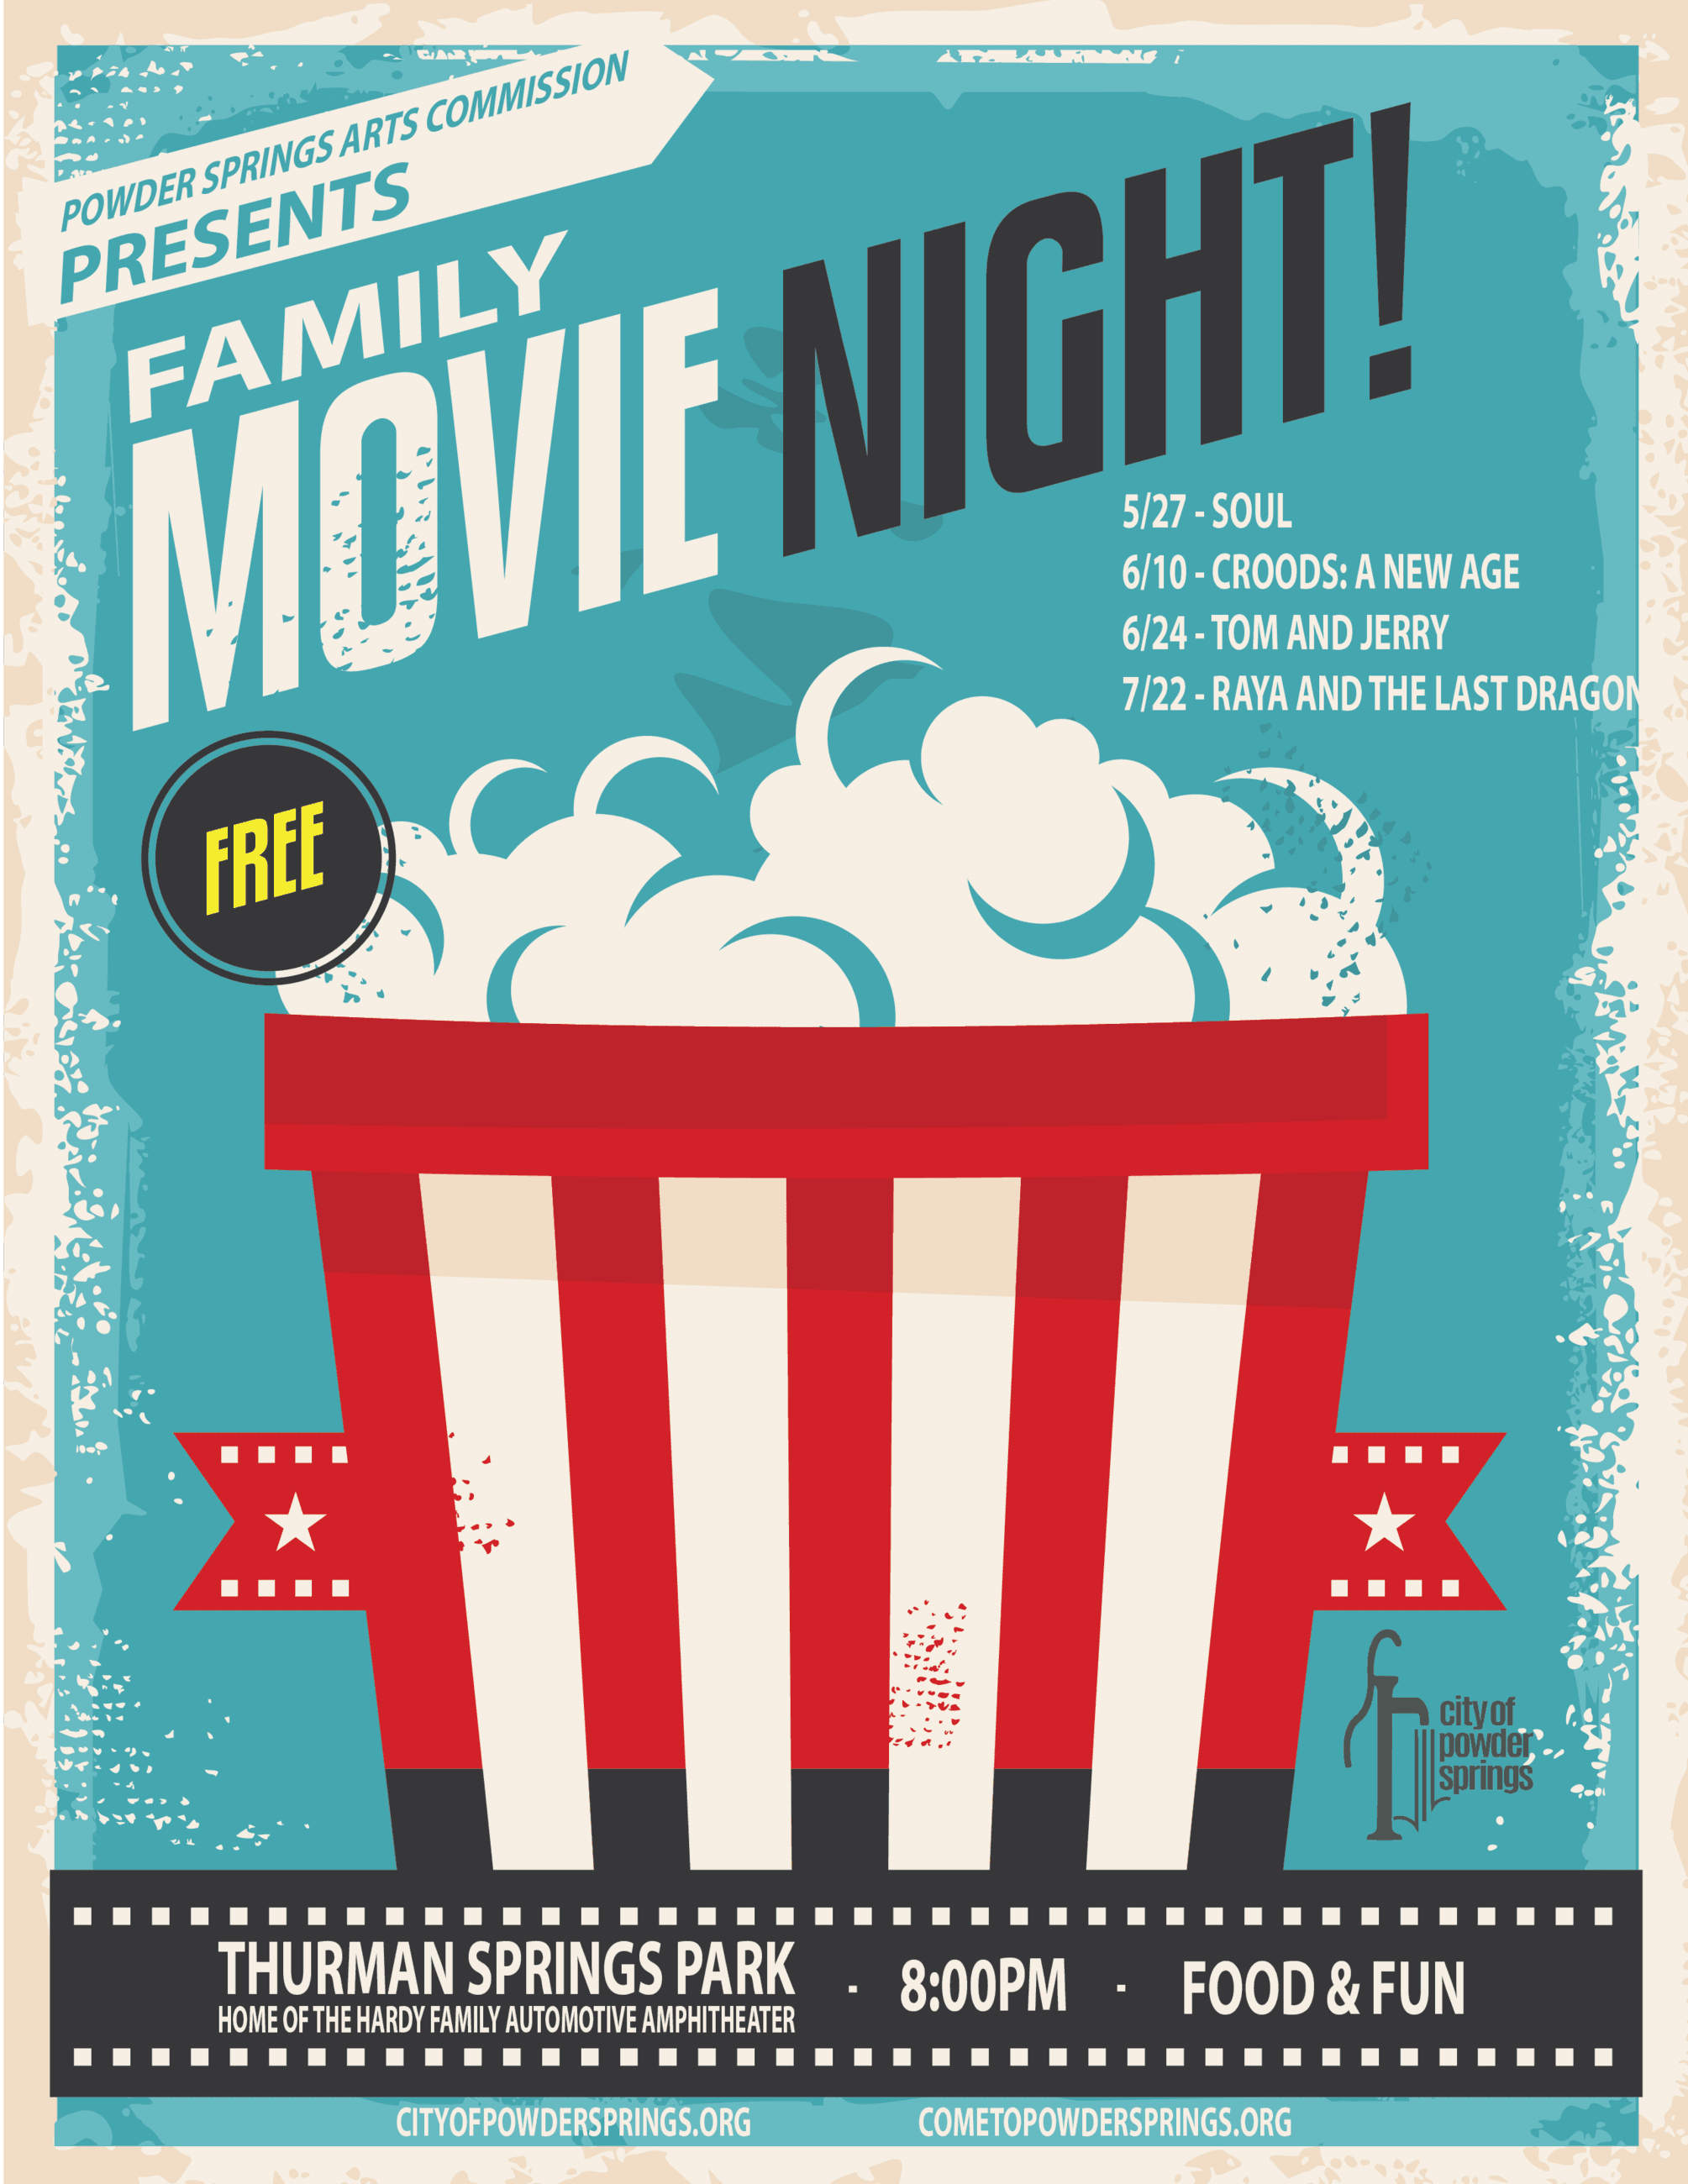 Family Movie Night Poster showing large bag of movie popcorn and dates of movies to come